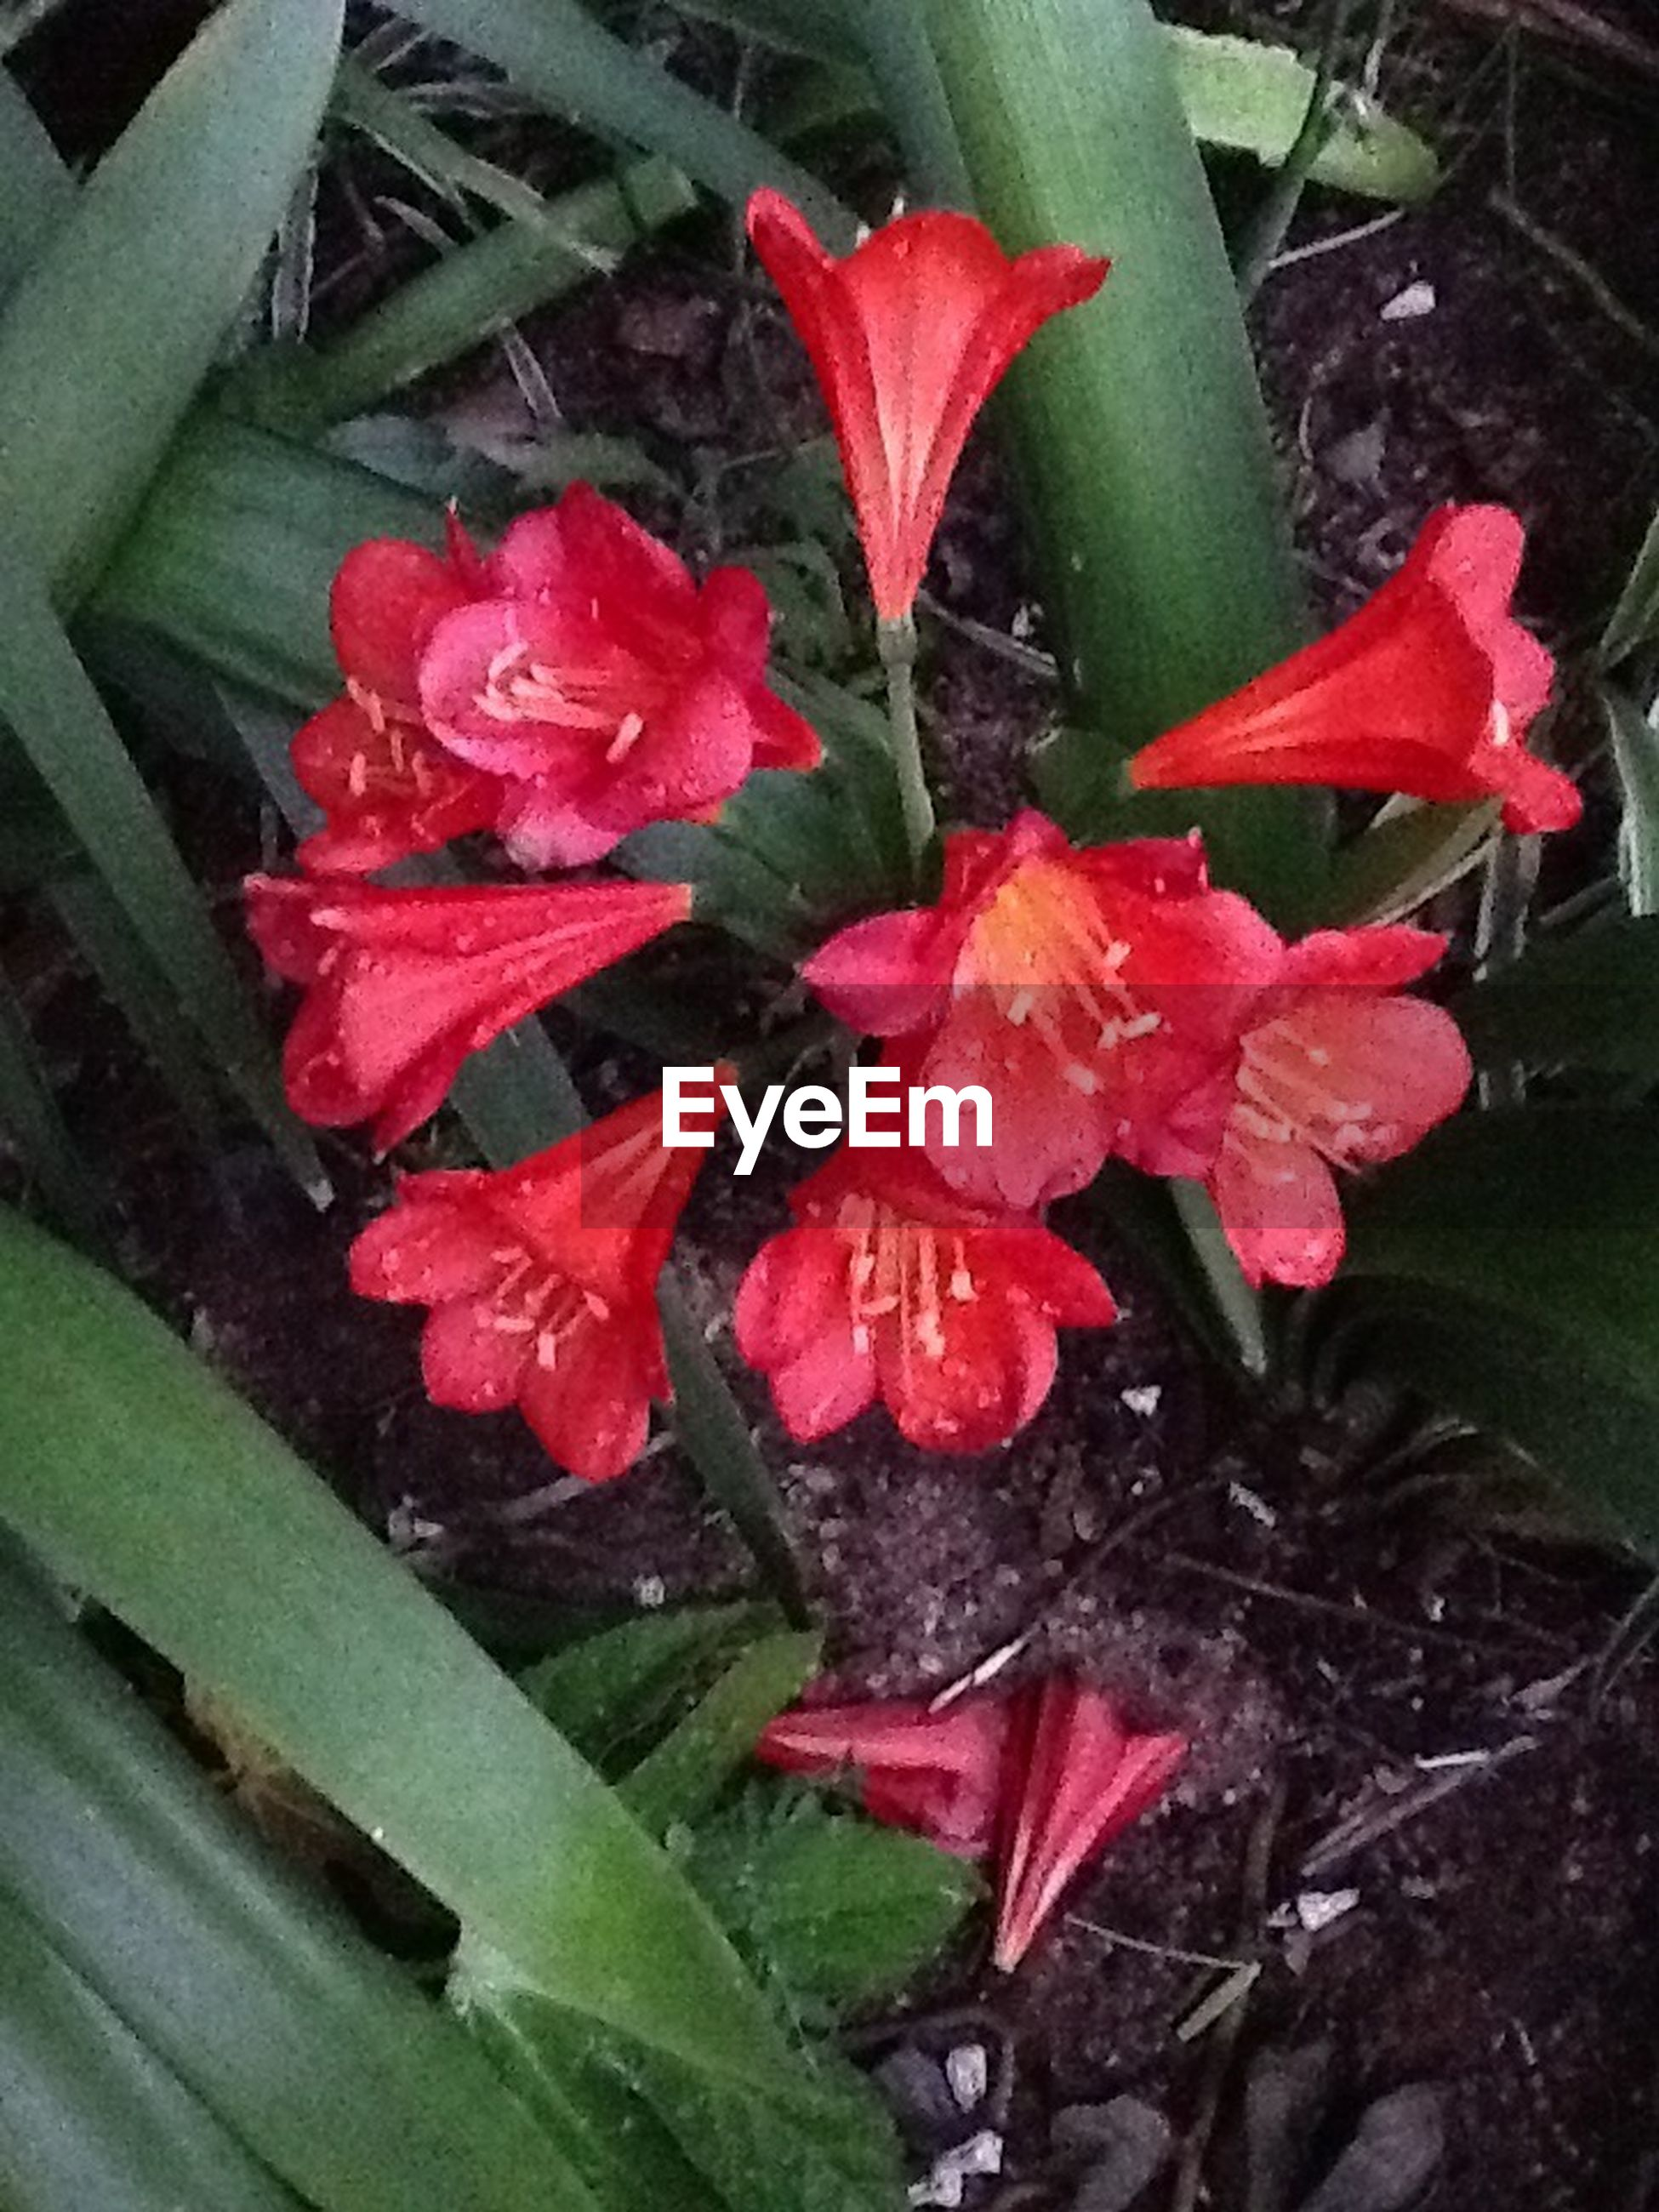 flower, petal, red, fragility, freshness, flower head, growth, beauty in nature, plant, leaf, close-up, blooming, nature, high angle view, in bloom, day, wet, outdoors, field, no people